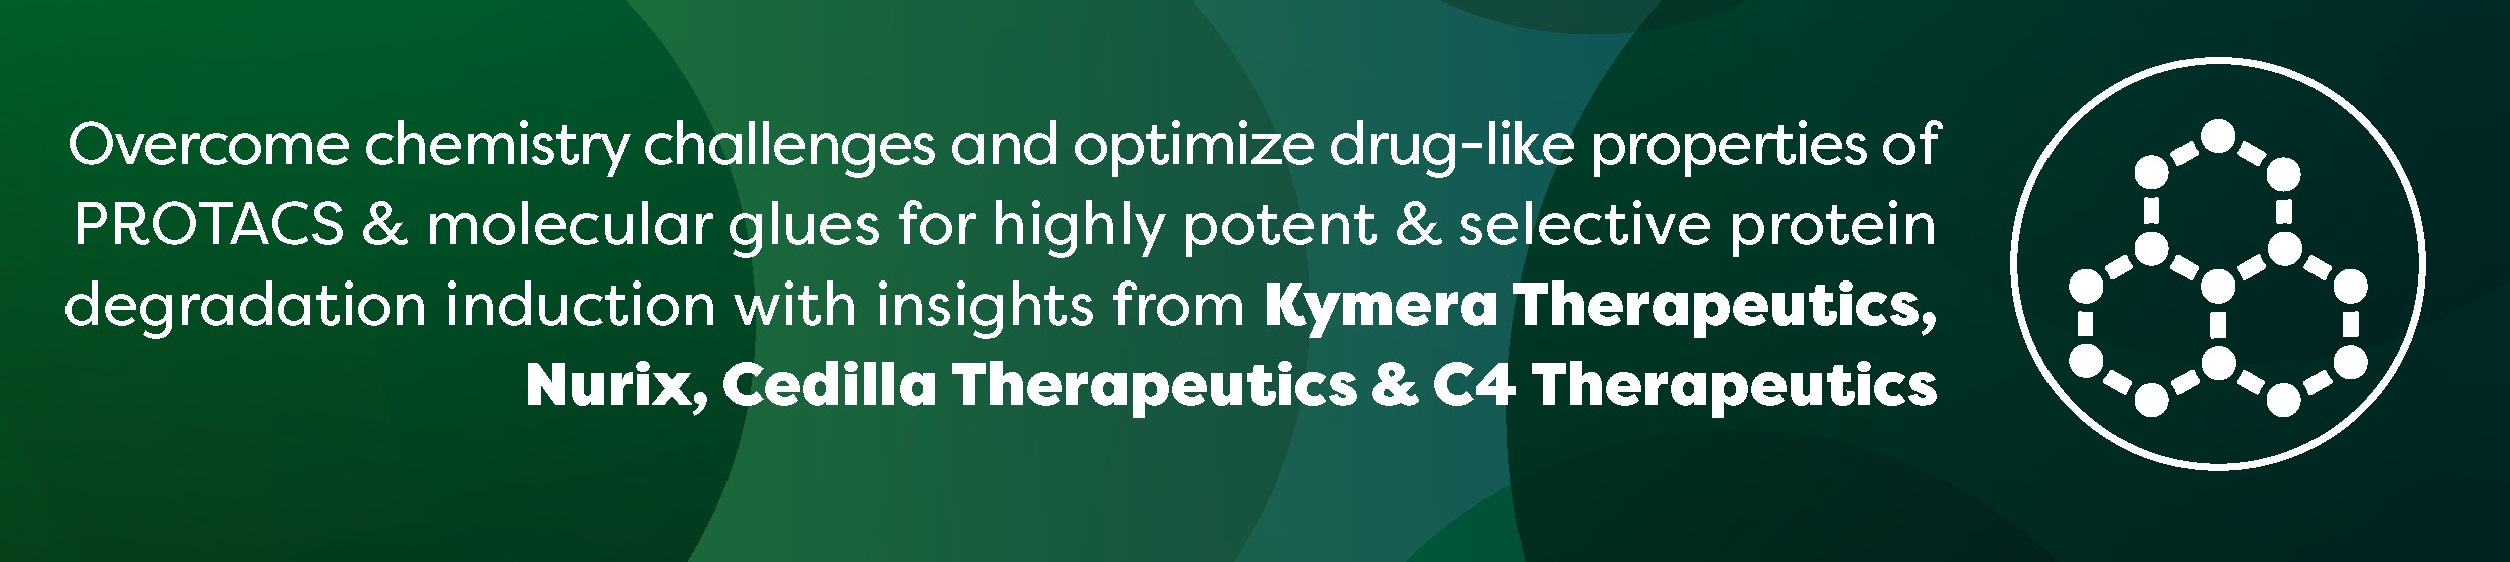 Overcome chemistry challenges and optimize drug-like properties of PROTACS & molecular glues for highly potent & selective protein degradation induction with insights from Kymera Therapeutics, Nurix, Cedilla Therapeutics & C4 Therapeutics